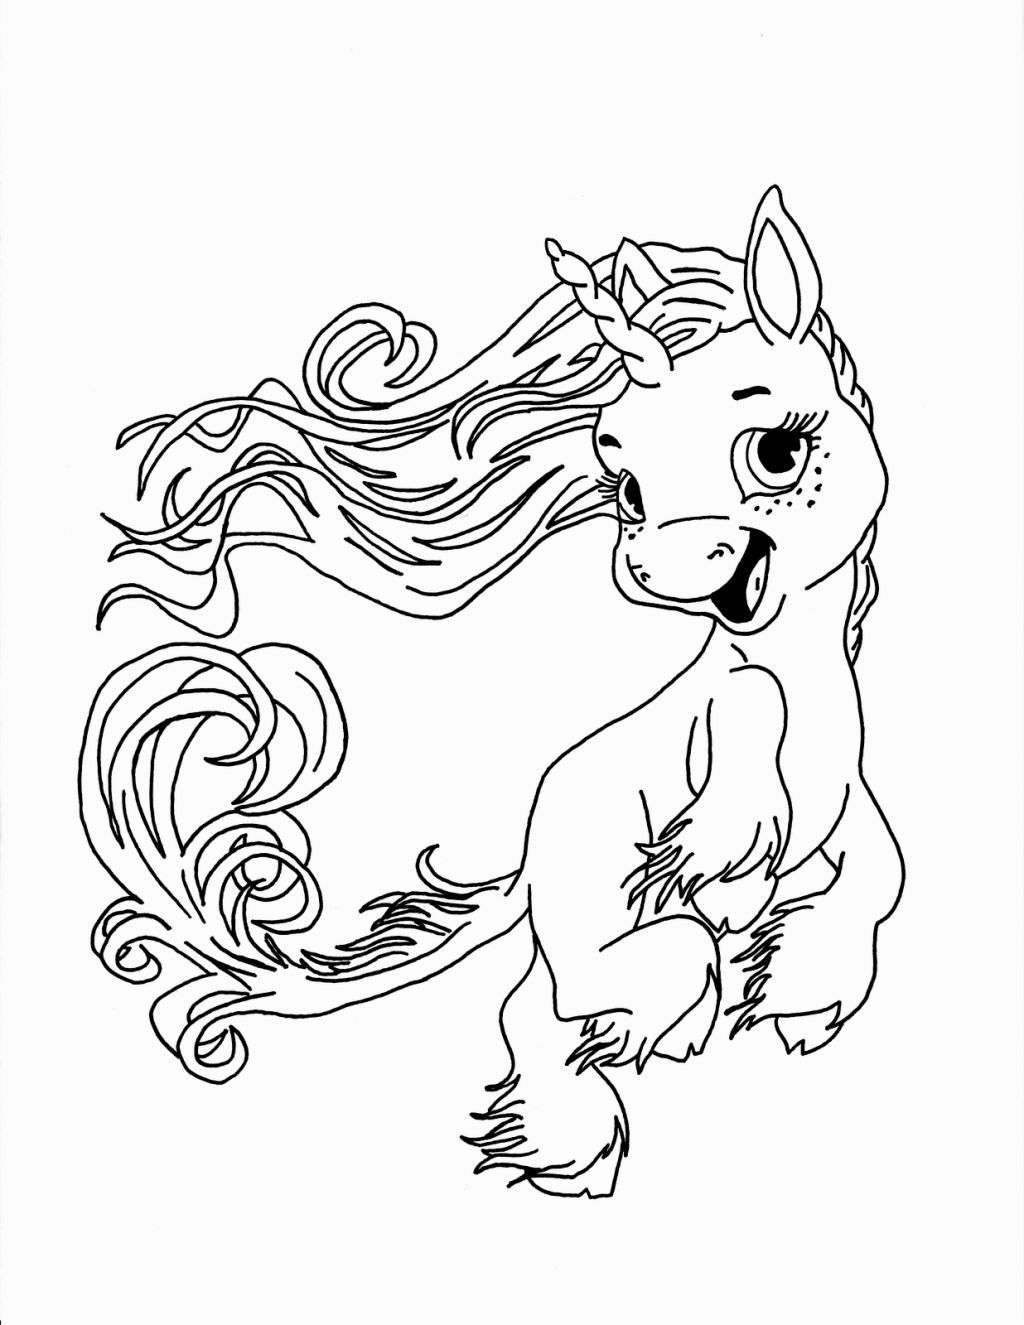 Free printable coloring pages unicorns - Printable Unicorn Coloring Pages